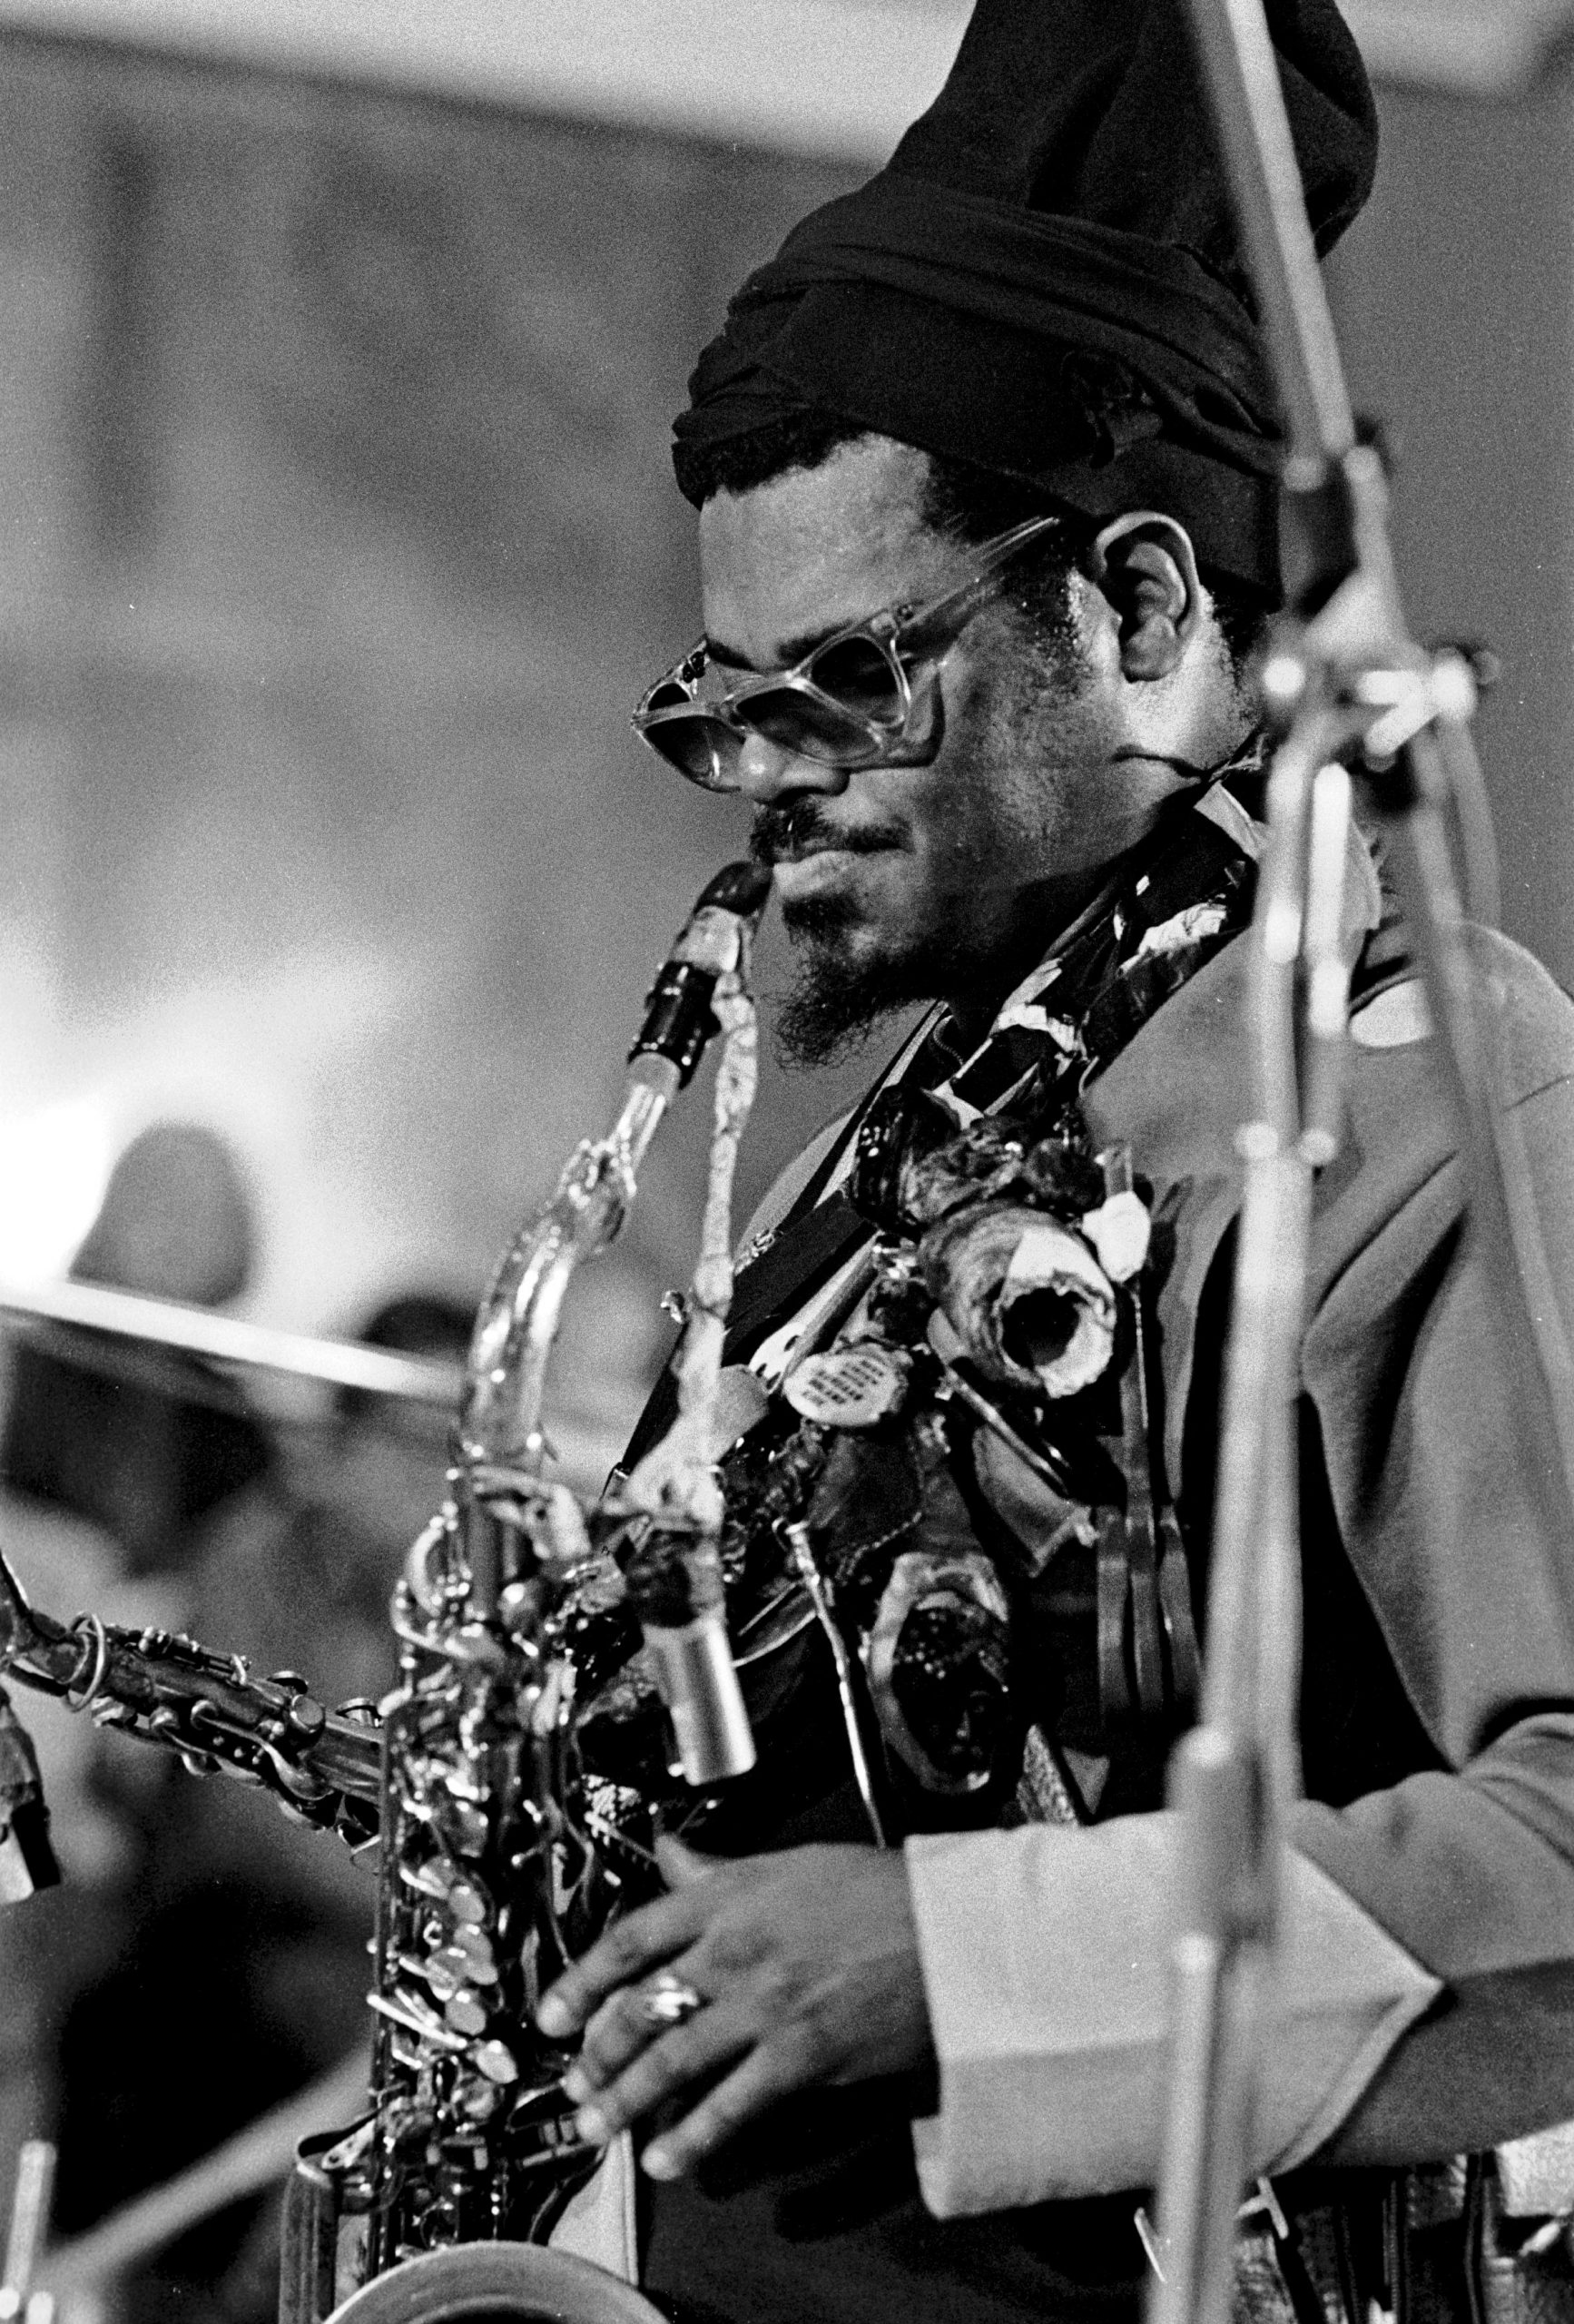 Roland Kirk - anh minh hoa